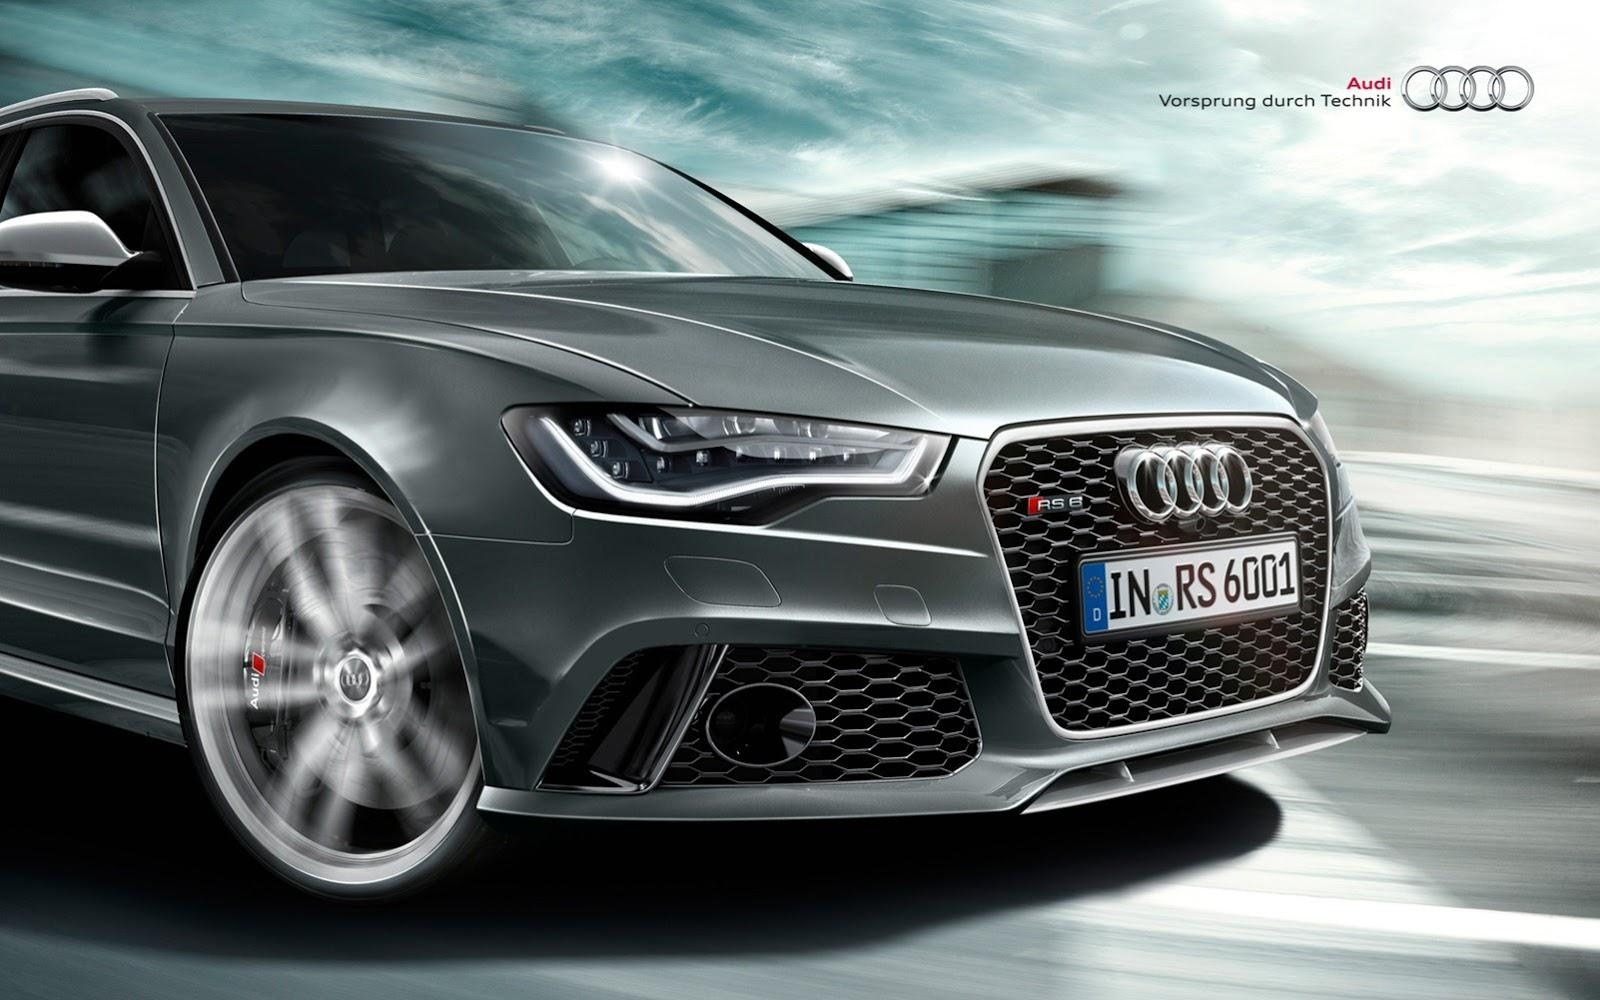 2014 audi rs6 avant plus car prices hd wallpaper. Black Bedroom Furniture Sets. Home Design Ideas